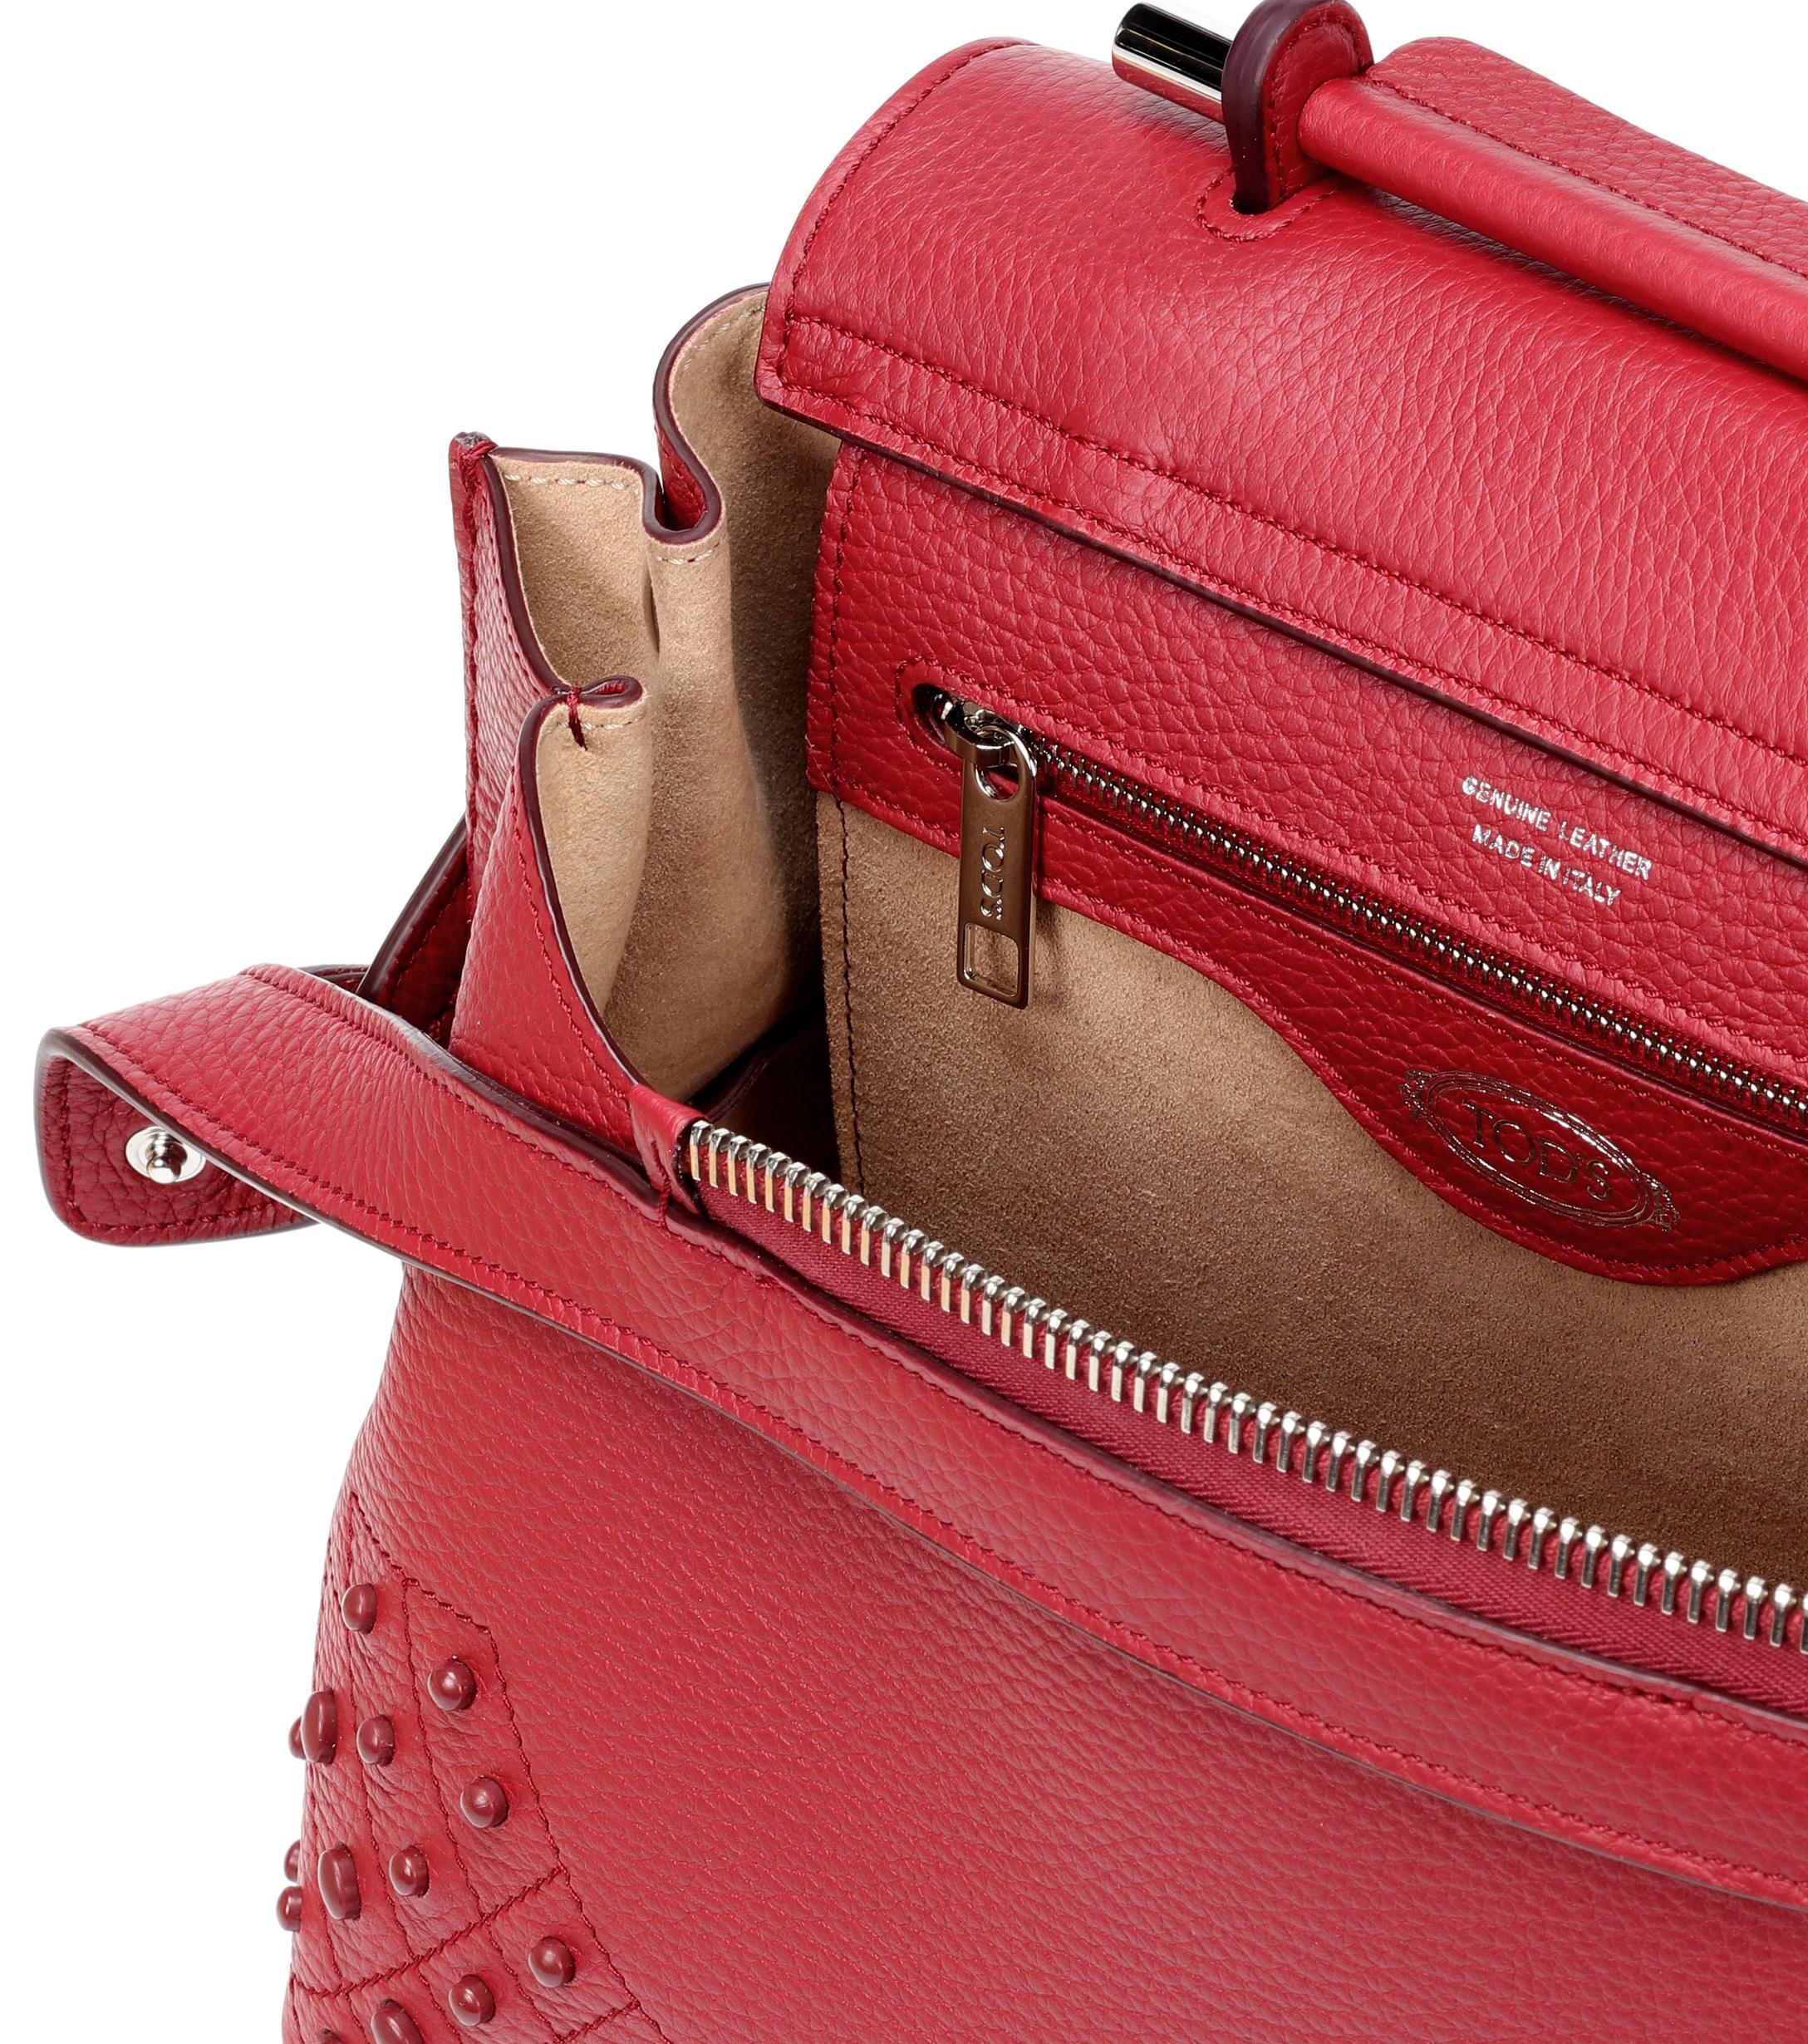 2bc7da5ae6f Tod's Wave Mini Leather Shoulder Bag in Red - Lyst